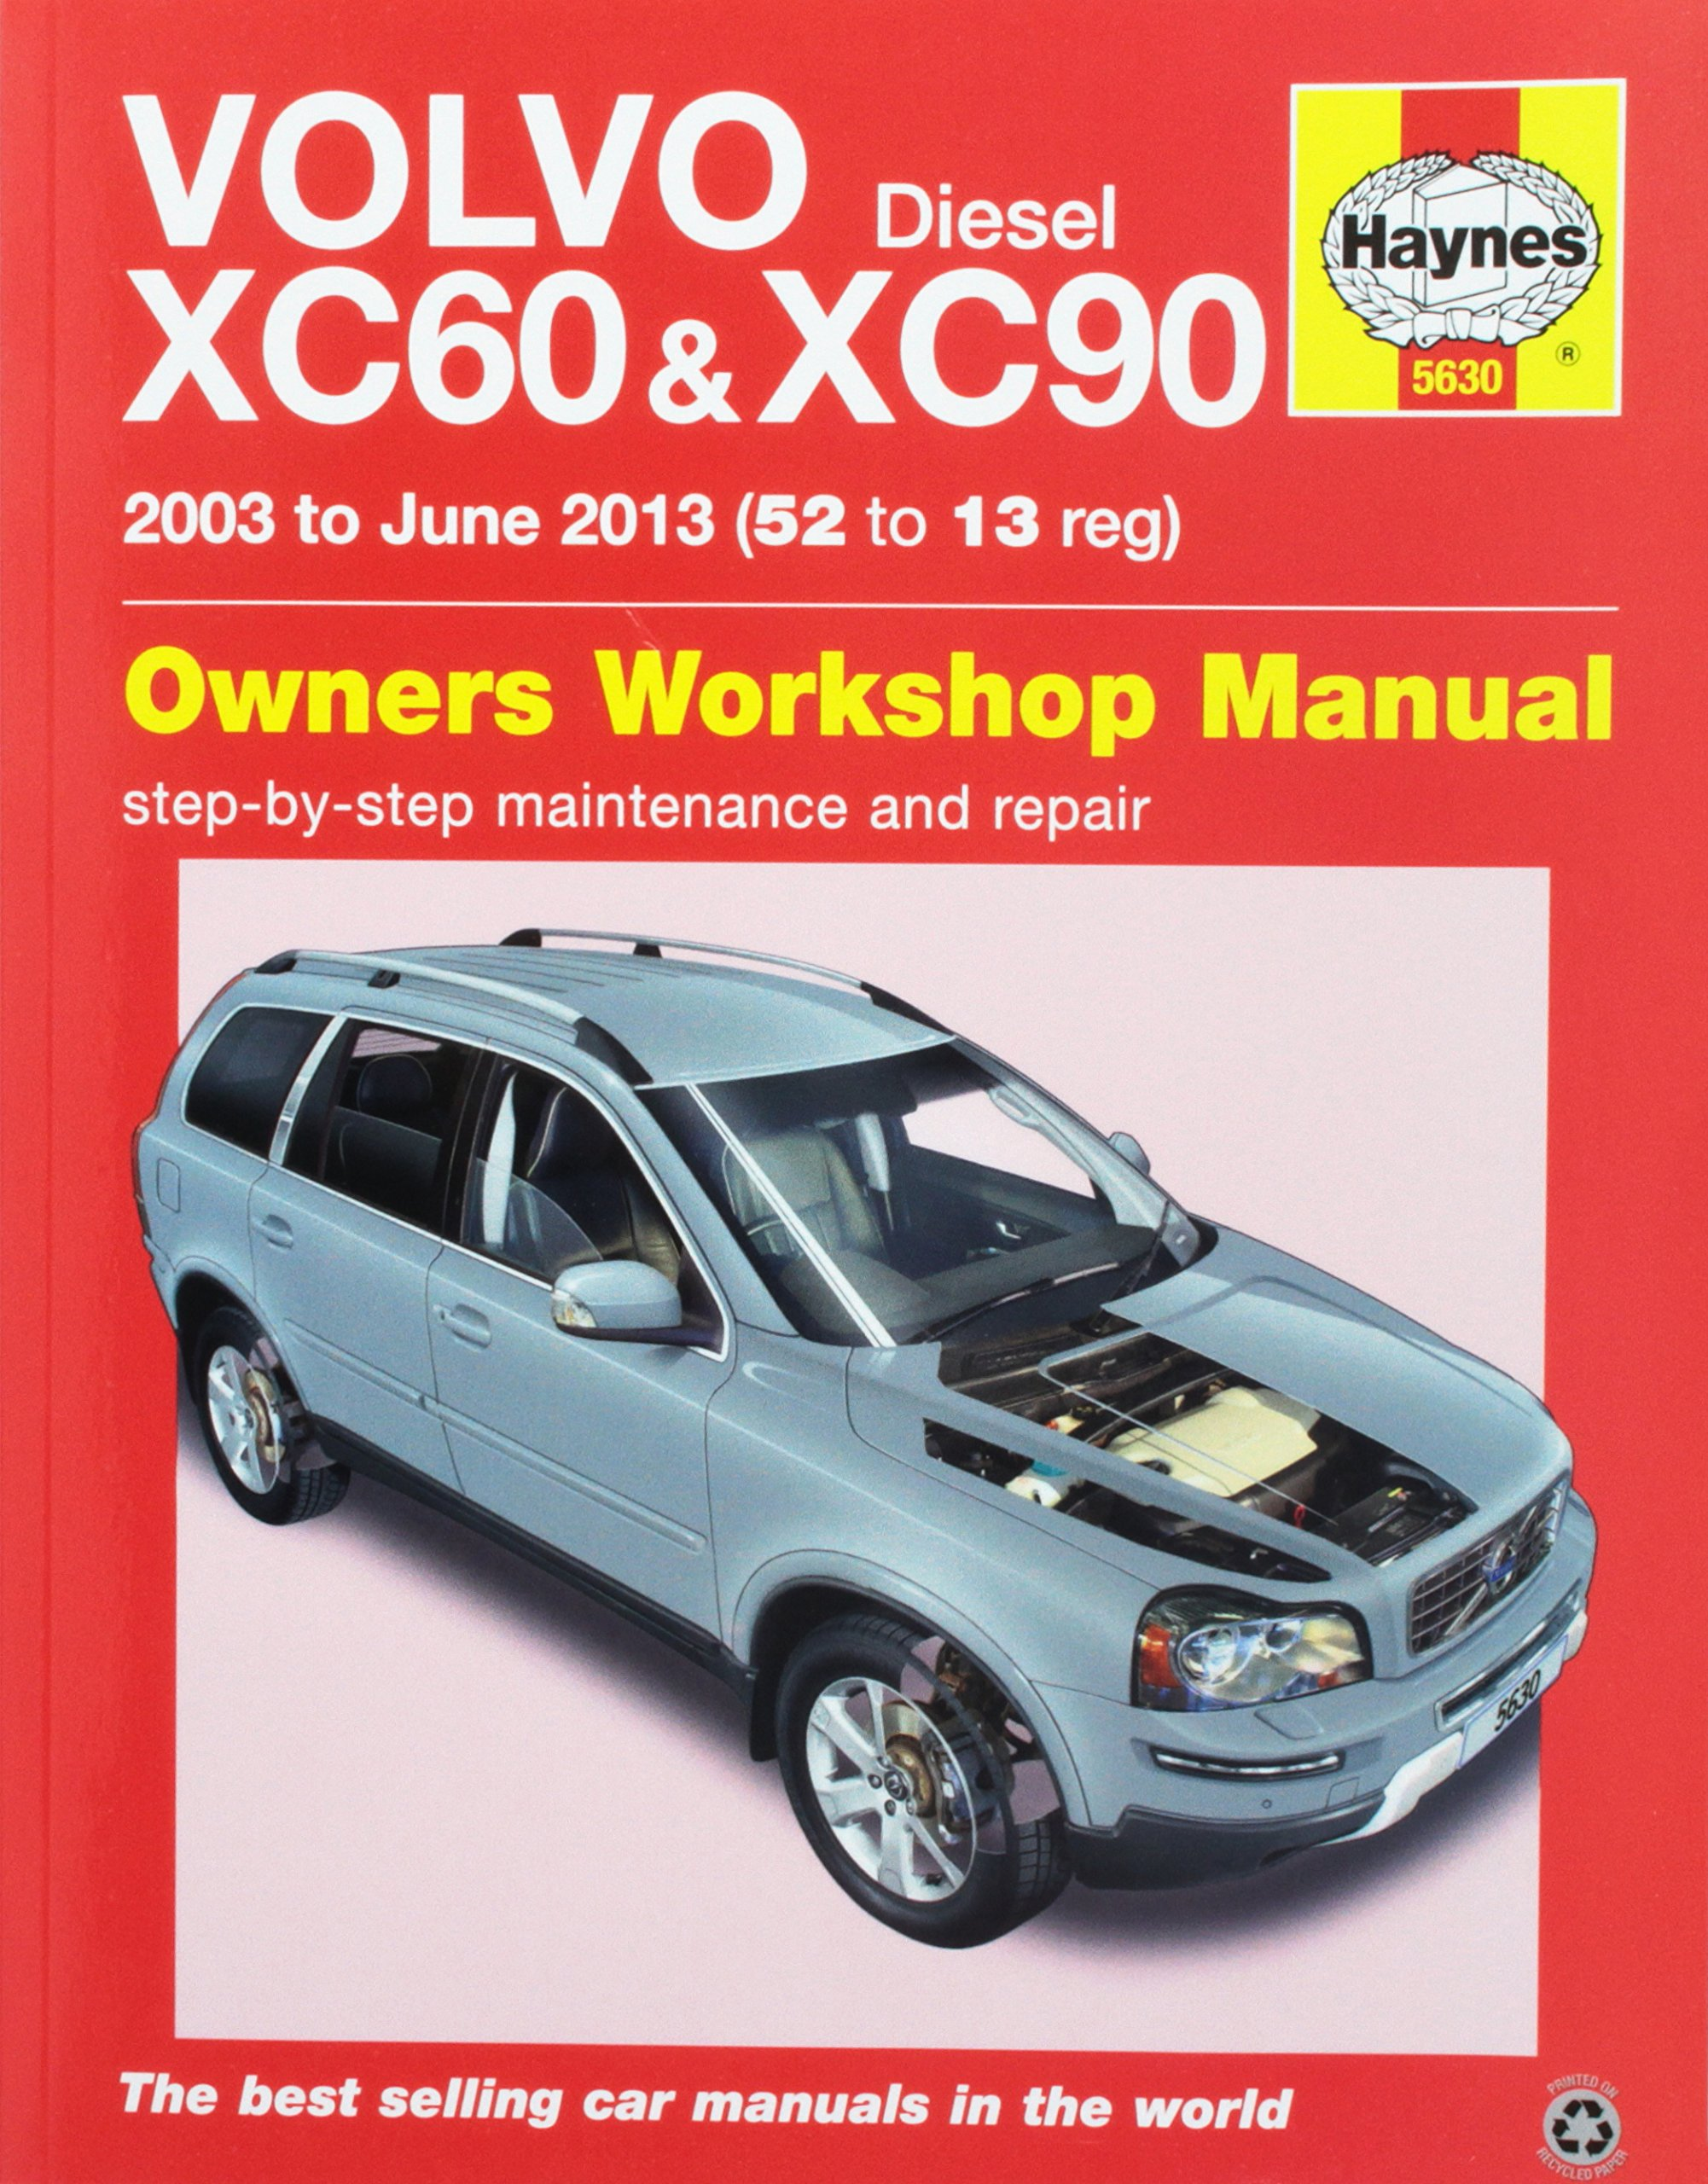 volvo diesel xc60 and xc90 owners workshop manual 2003 to june 2013 rh amazon com 2012 volvo xc90 owners manual uk 2012 volvo xc90 owners manual uk